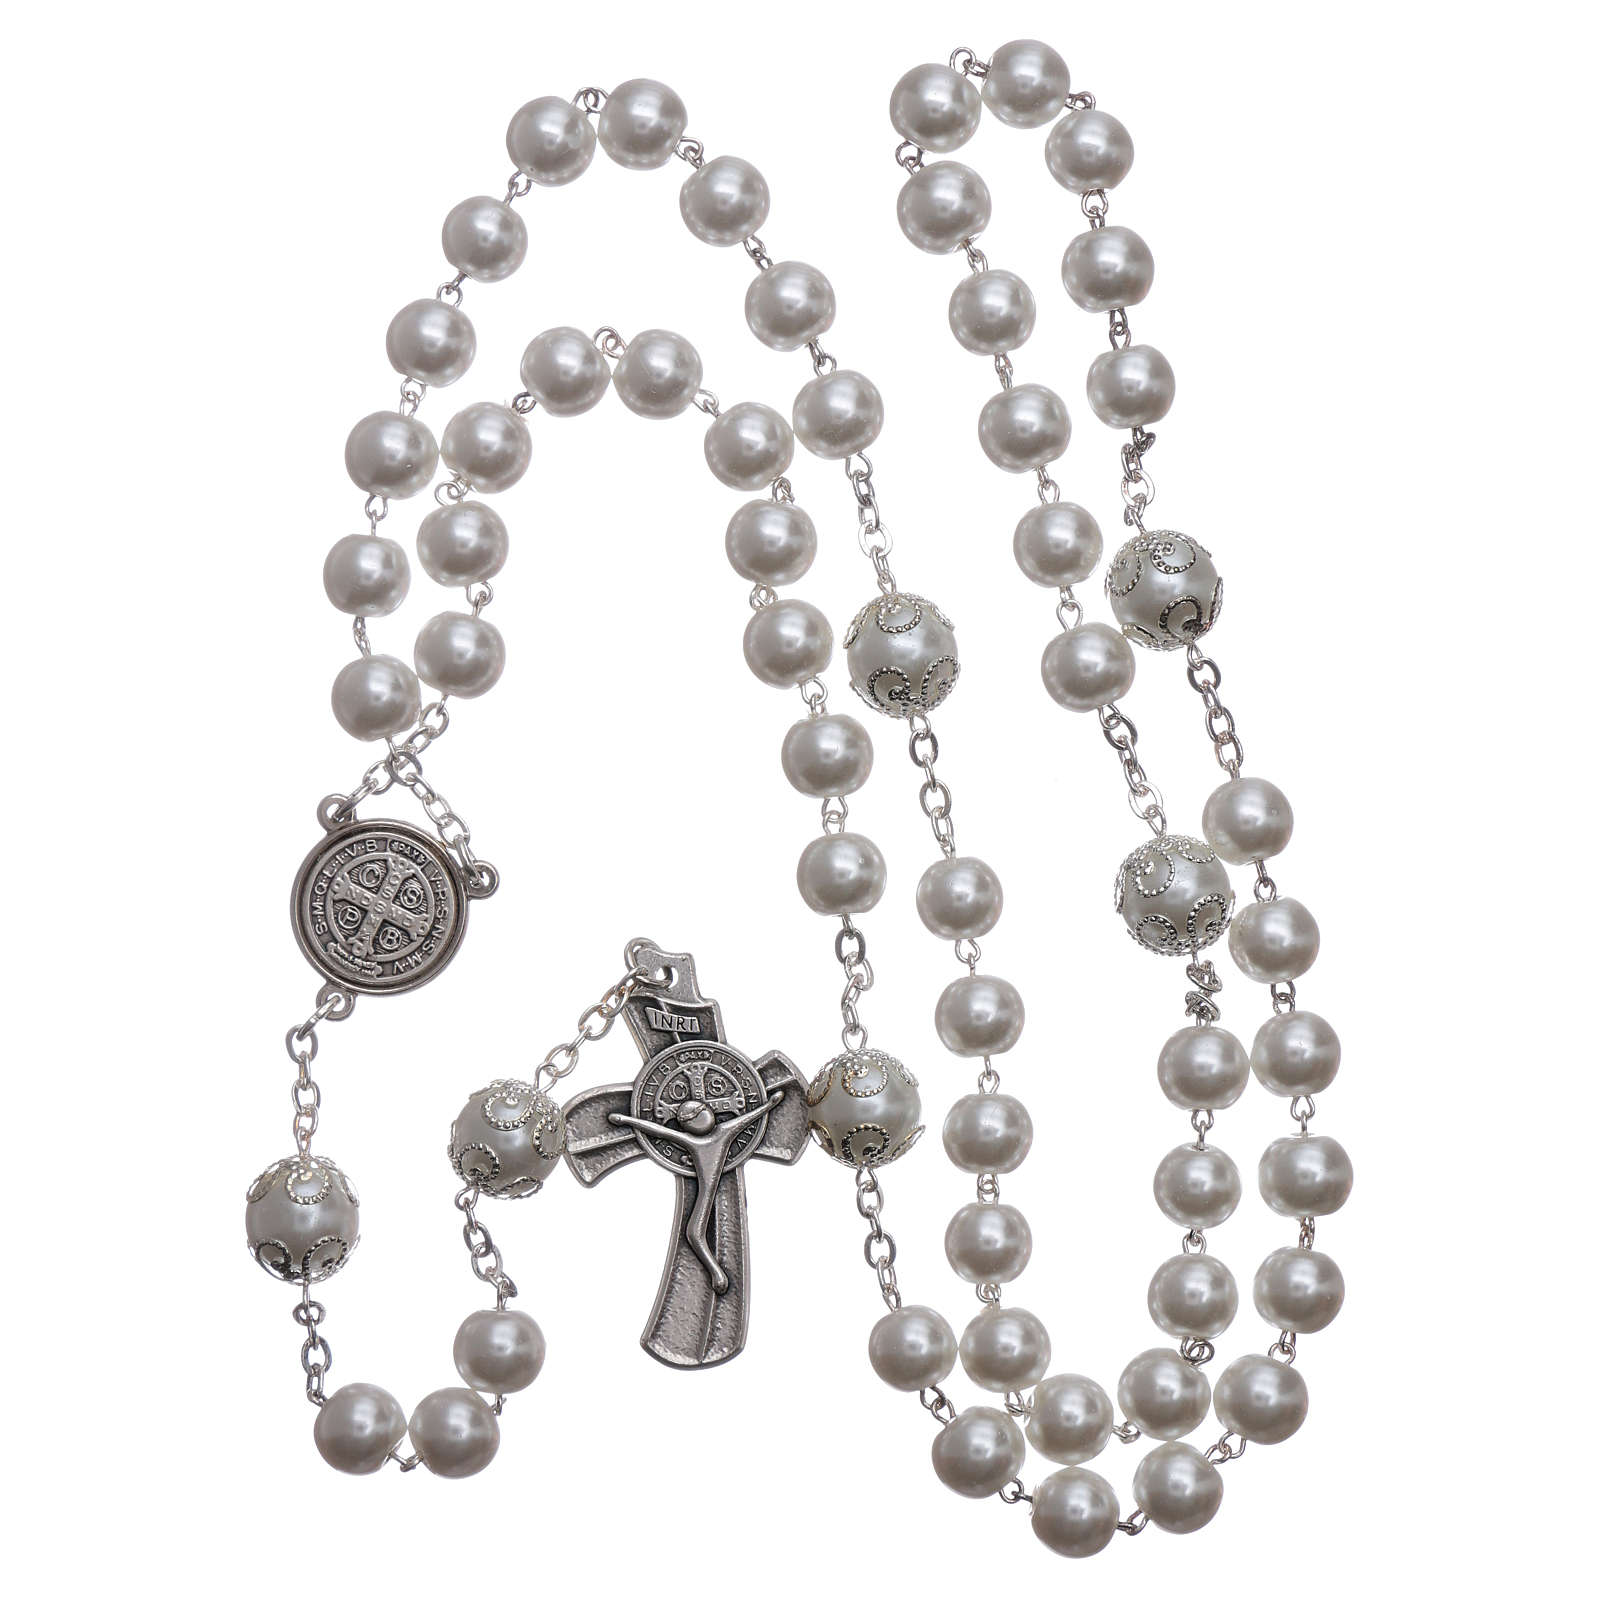 Medjugorje rosary in pearl imitation Saint Benedict 8 mm 4